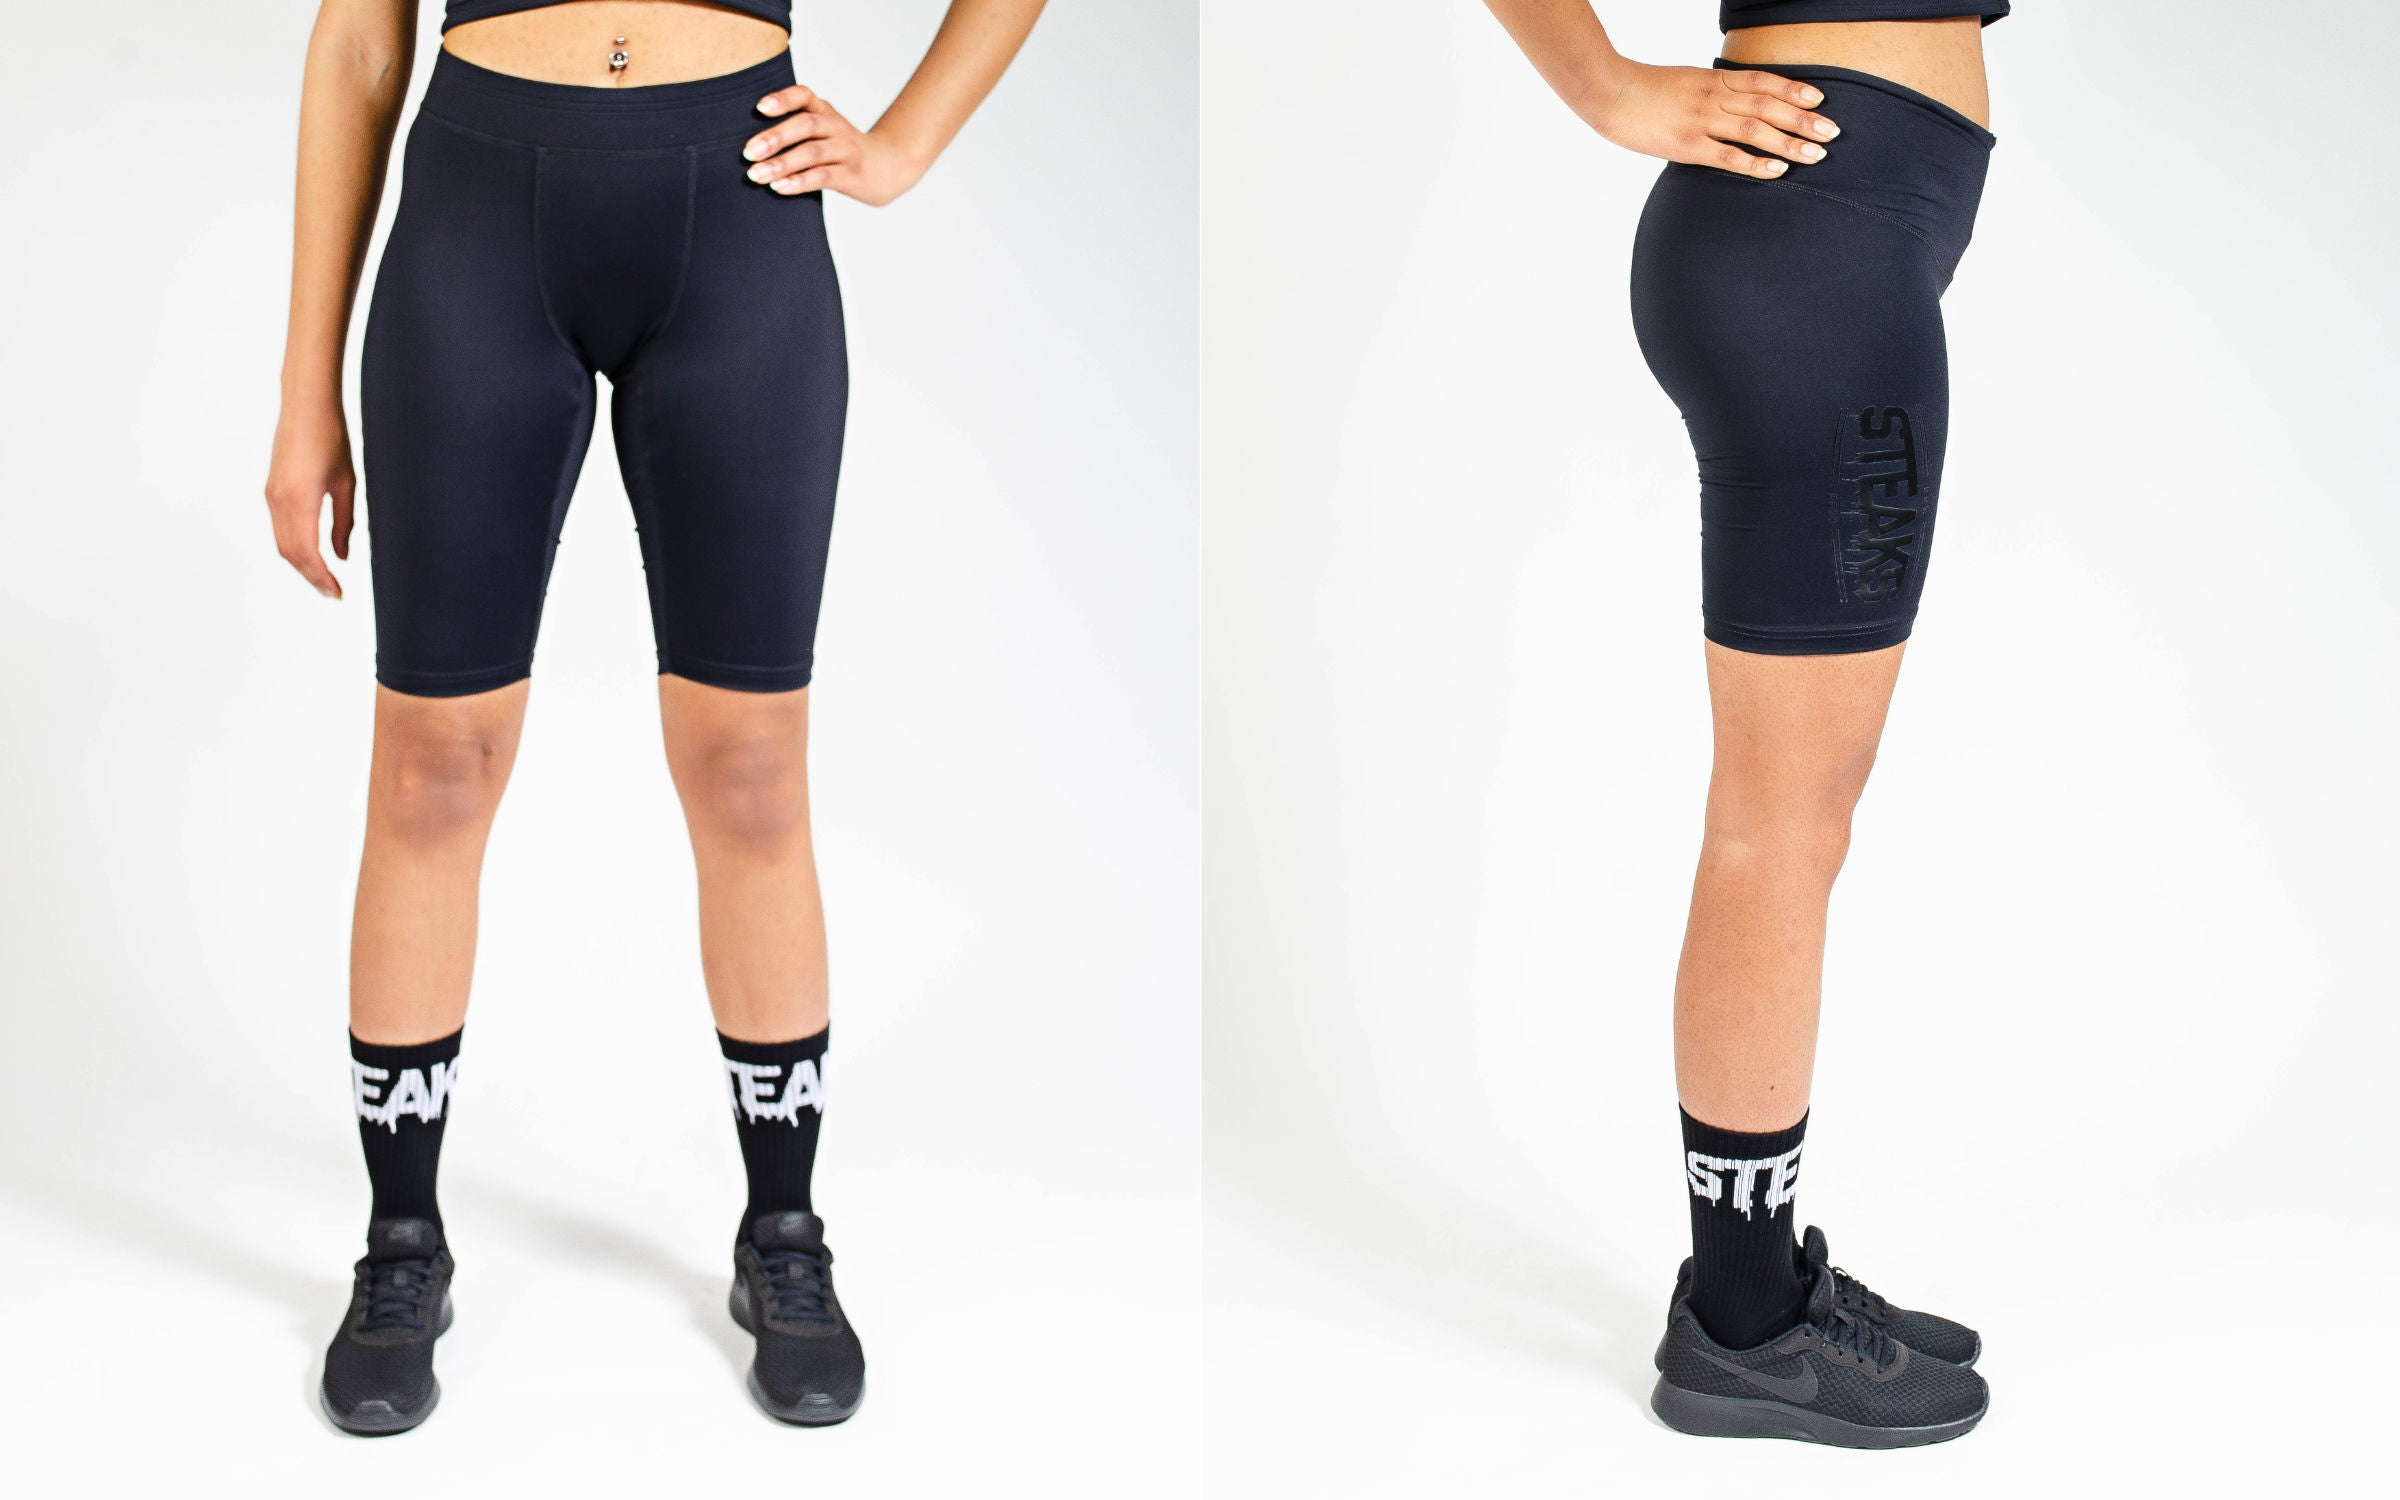 We have added 15cm/5.9 inches to our Flesh Diamond Shorts (includes removable coccyx protection).